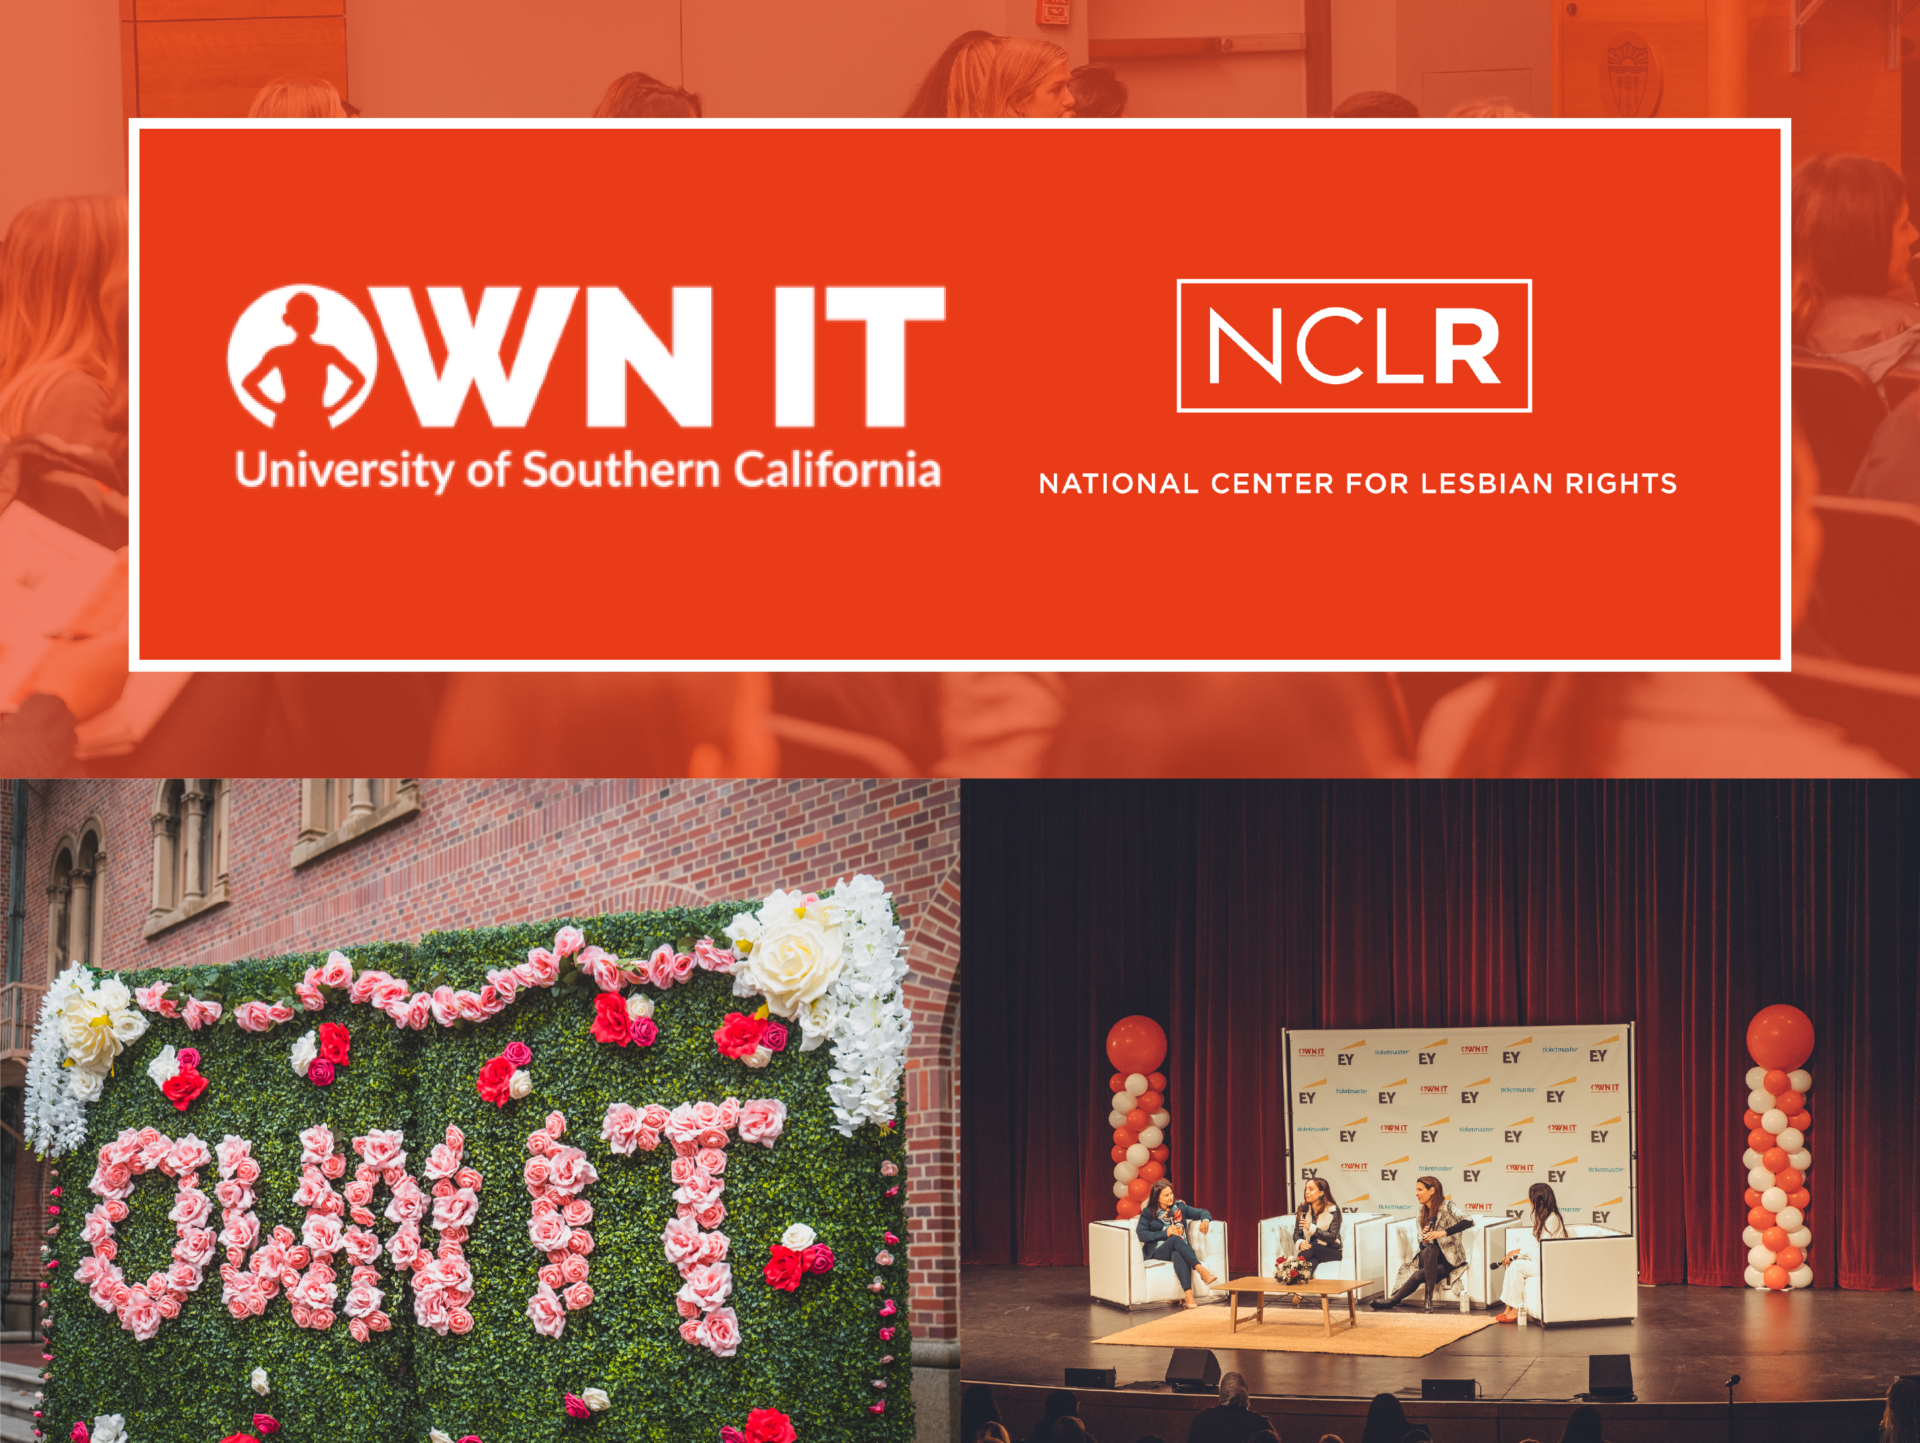 Top Half: USC OWN IT and NCLR logo on an orange background; Bottom Left: decorative foliage wall spells out OWN IT in pink flowers; Bottom Right: four speakers sit on a stage in front of an audience